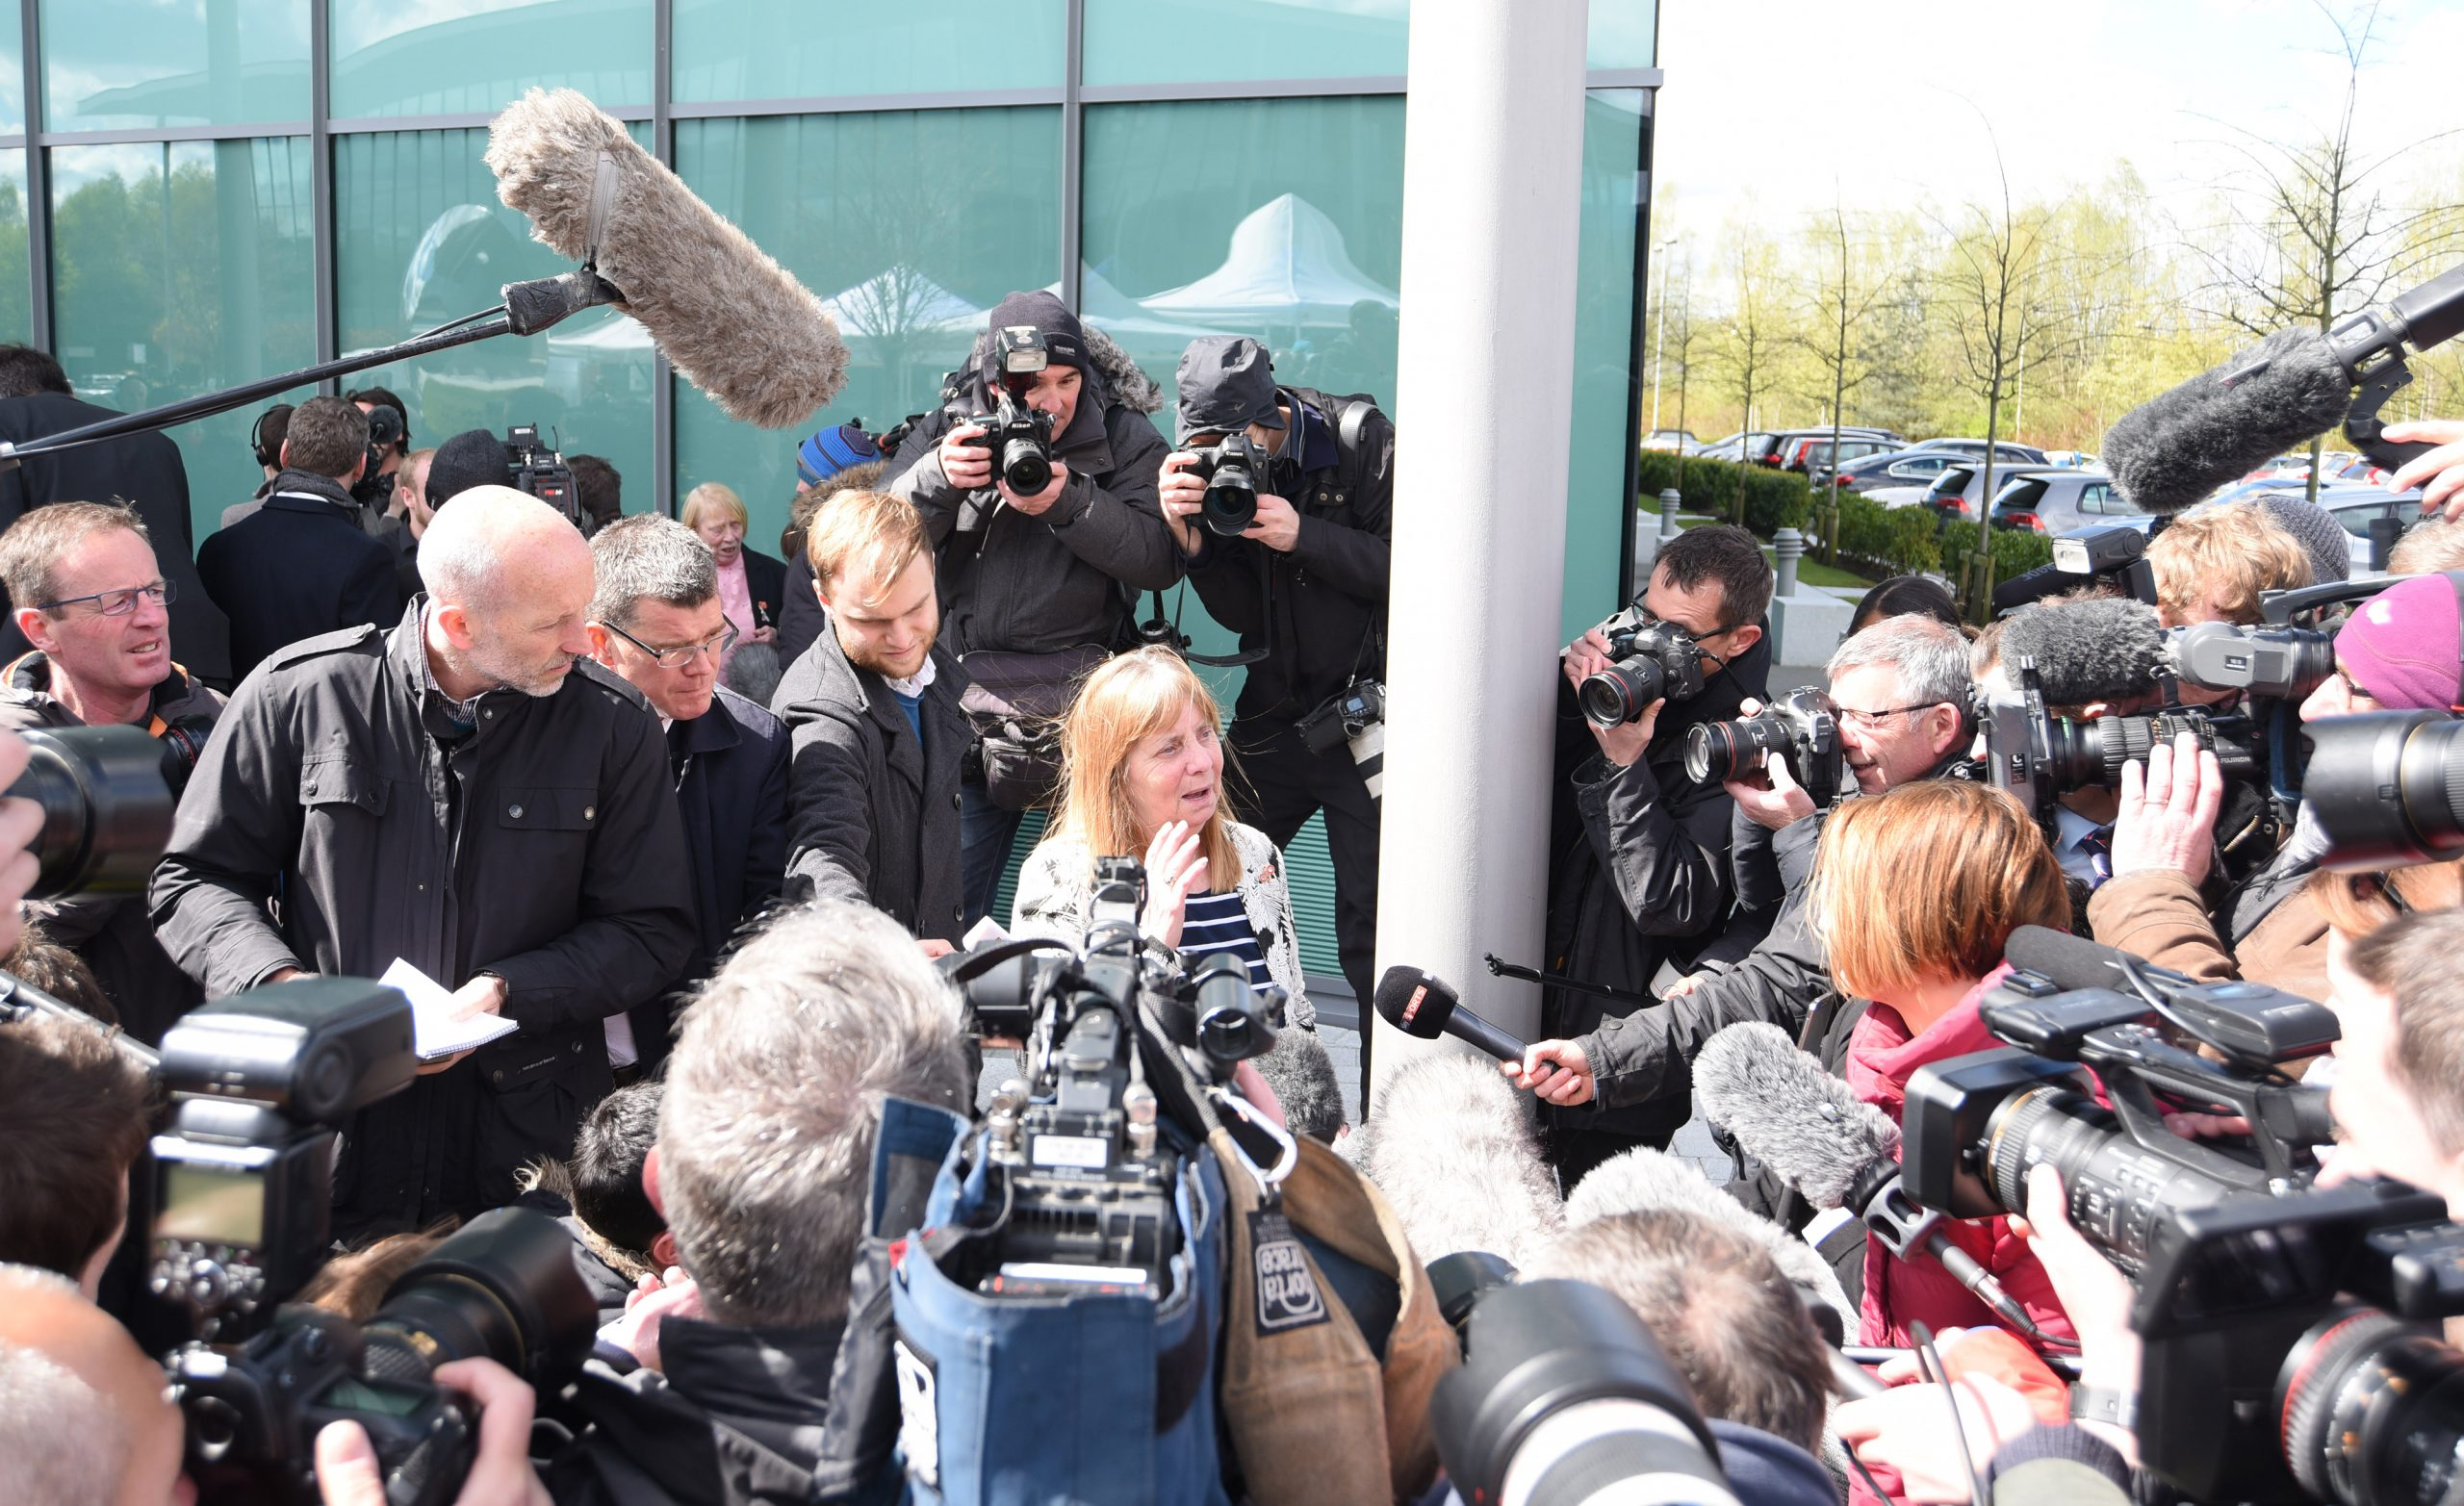 Margaret Aspinall after the Warrington inquests ©Paul Burrows